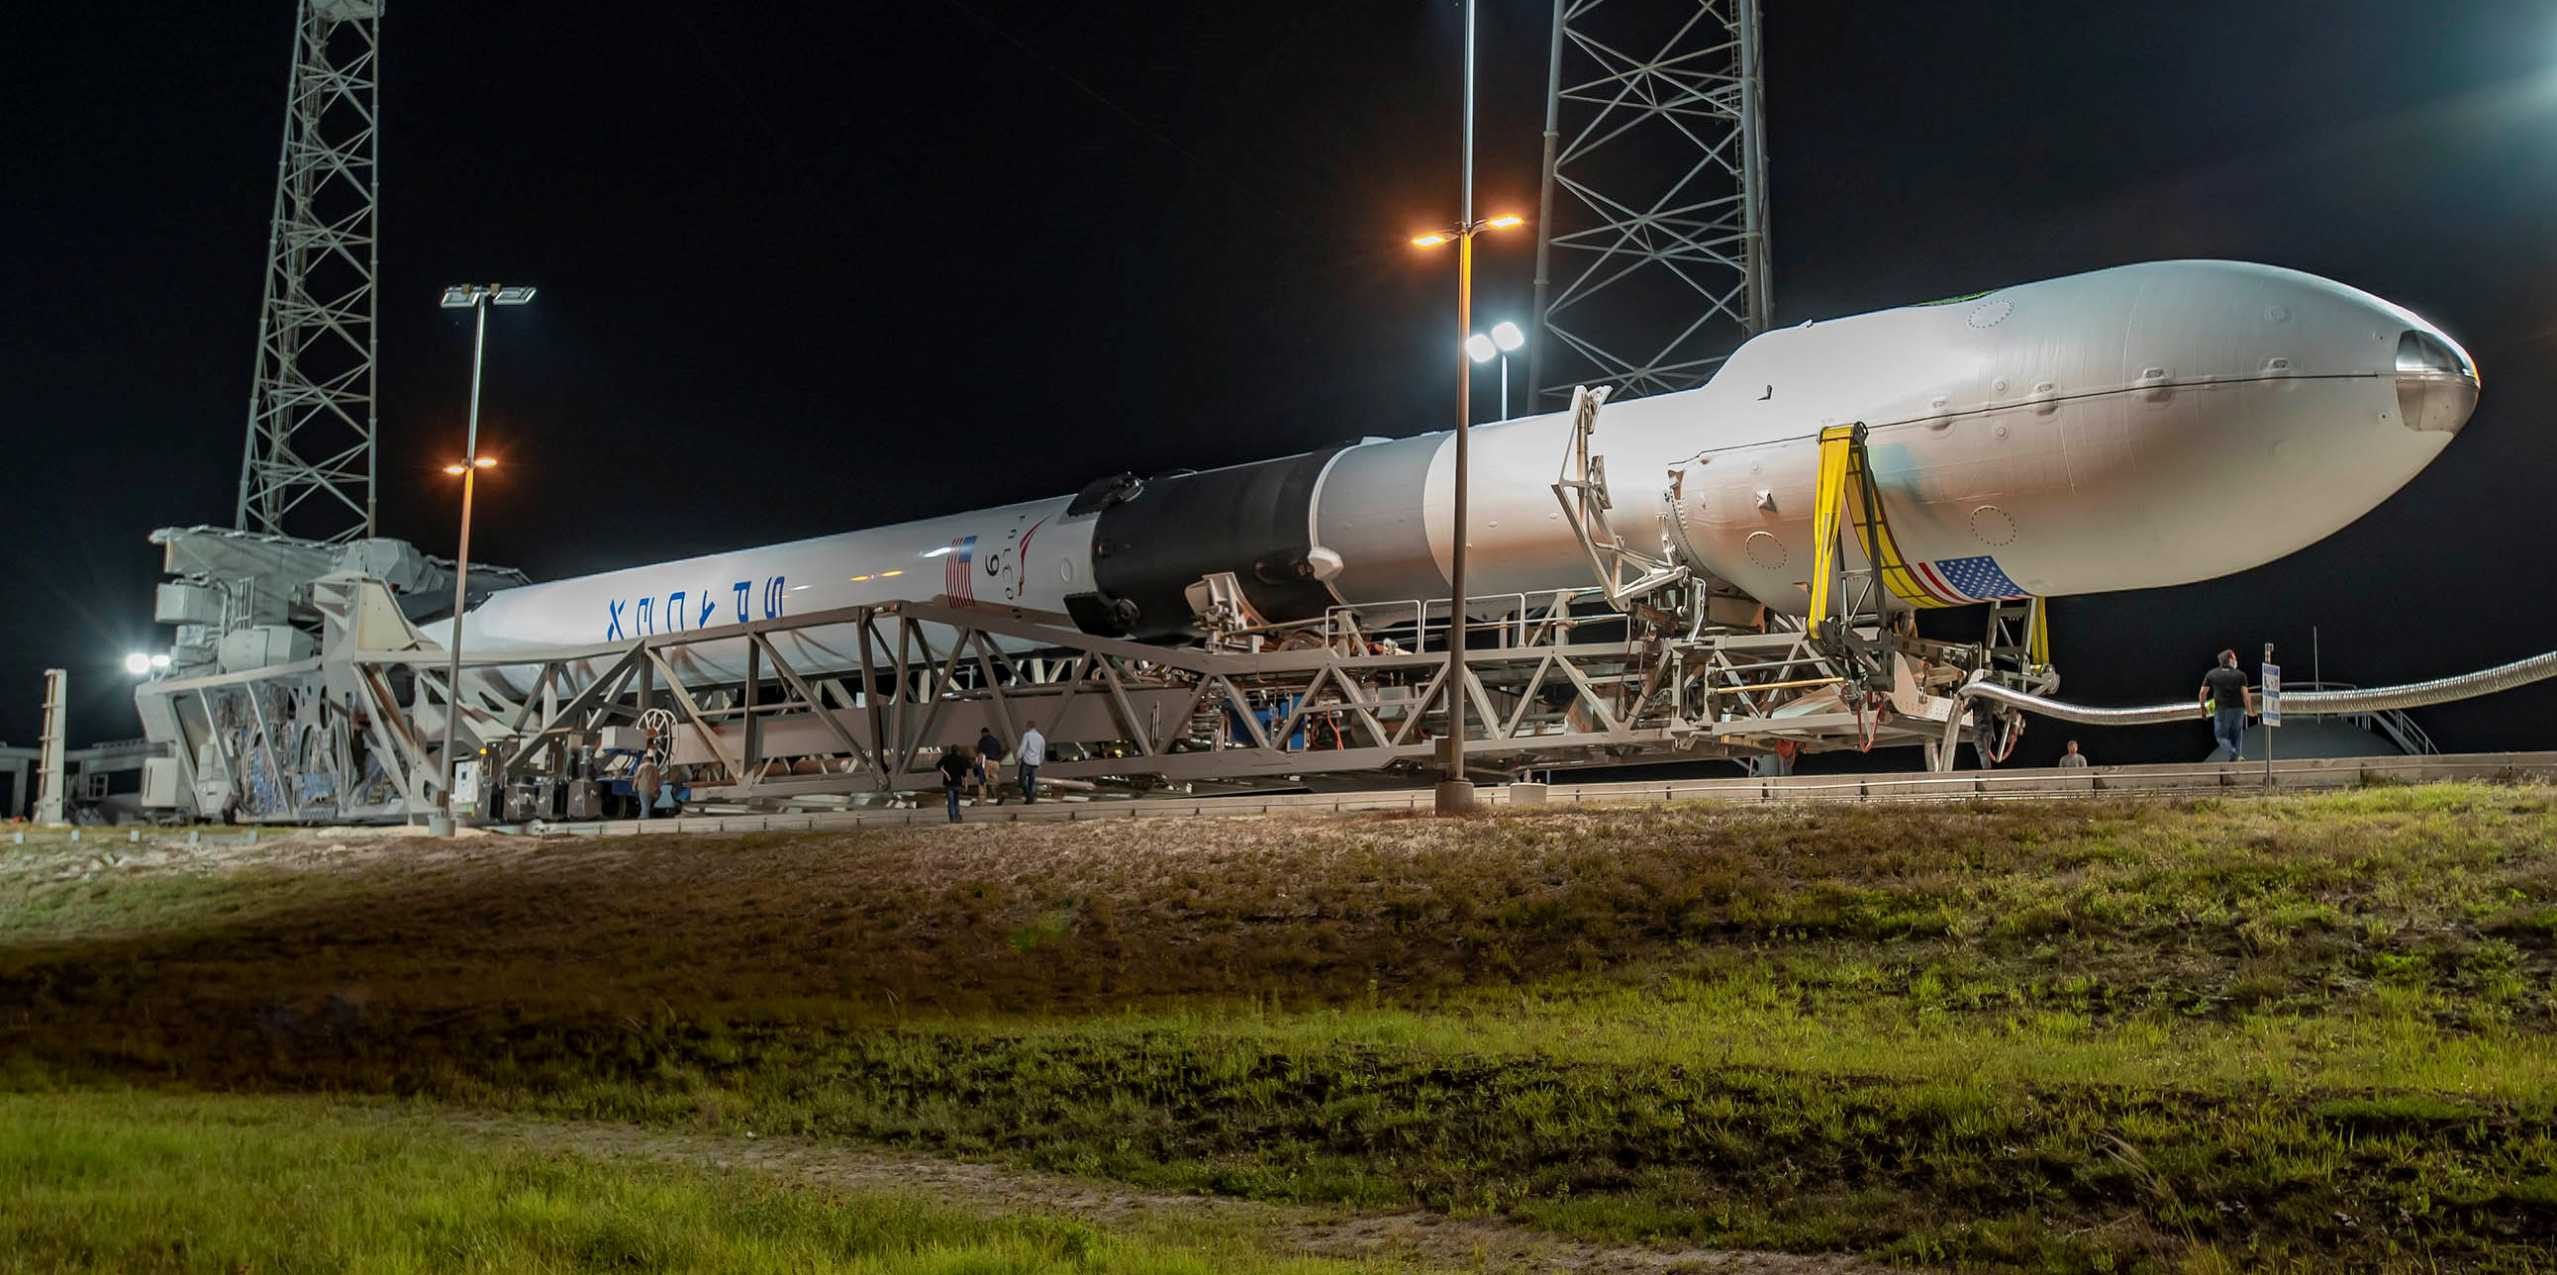 GPS III SV03 Falcon 9 B1060 LC-40 062930 (SpaceX) rollout 3 crop (c)